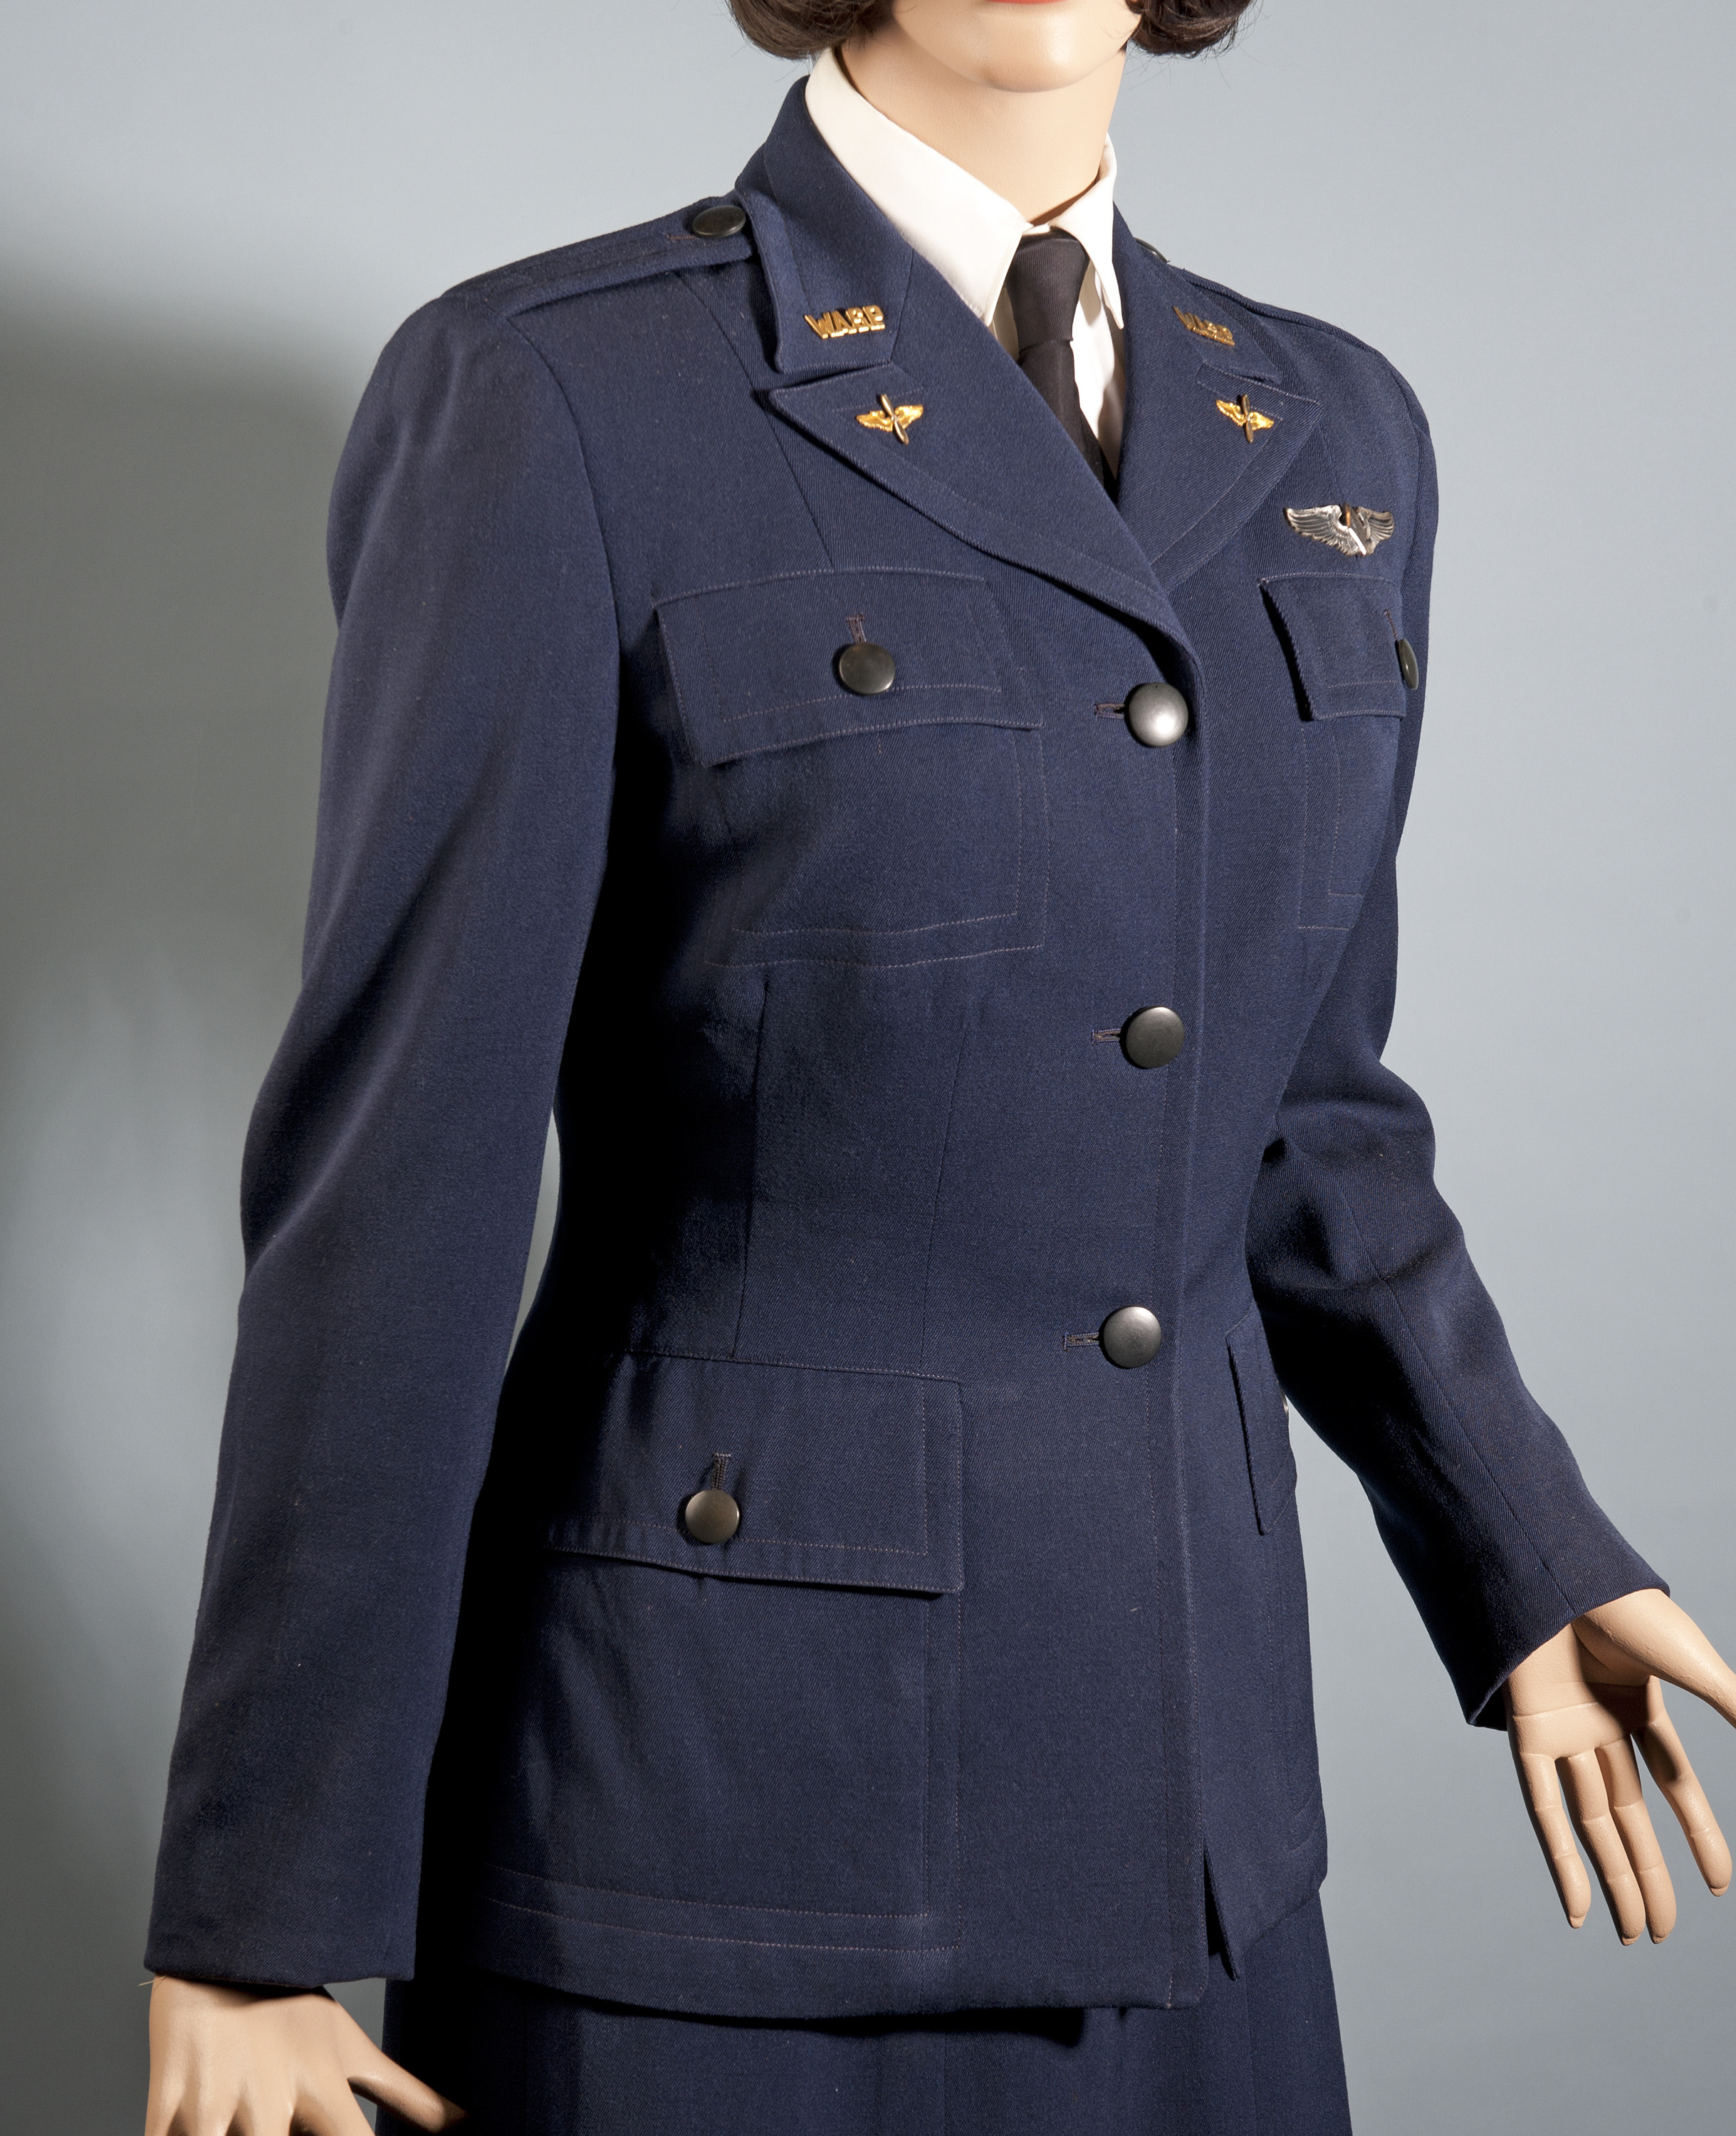 Tunic, Dress, Woman's Airforce Service Pilot (WASP) | National Air